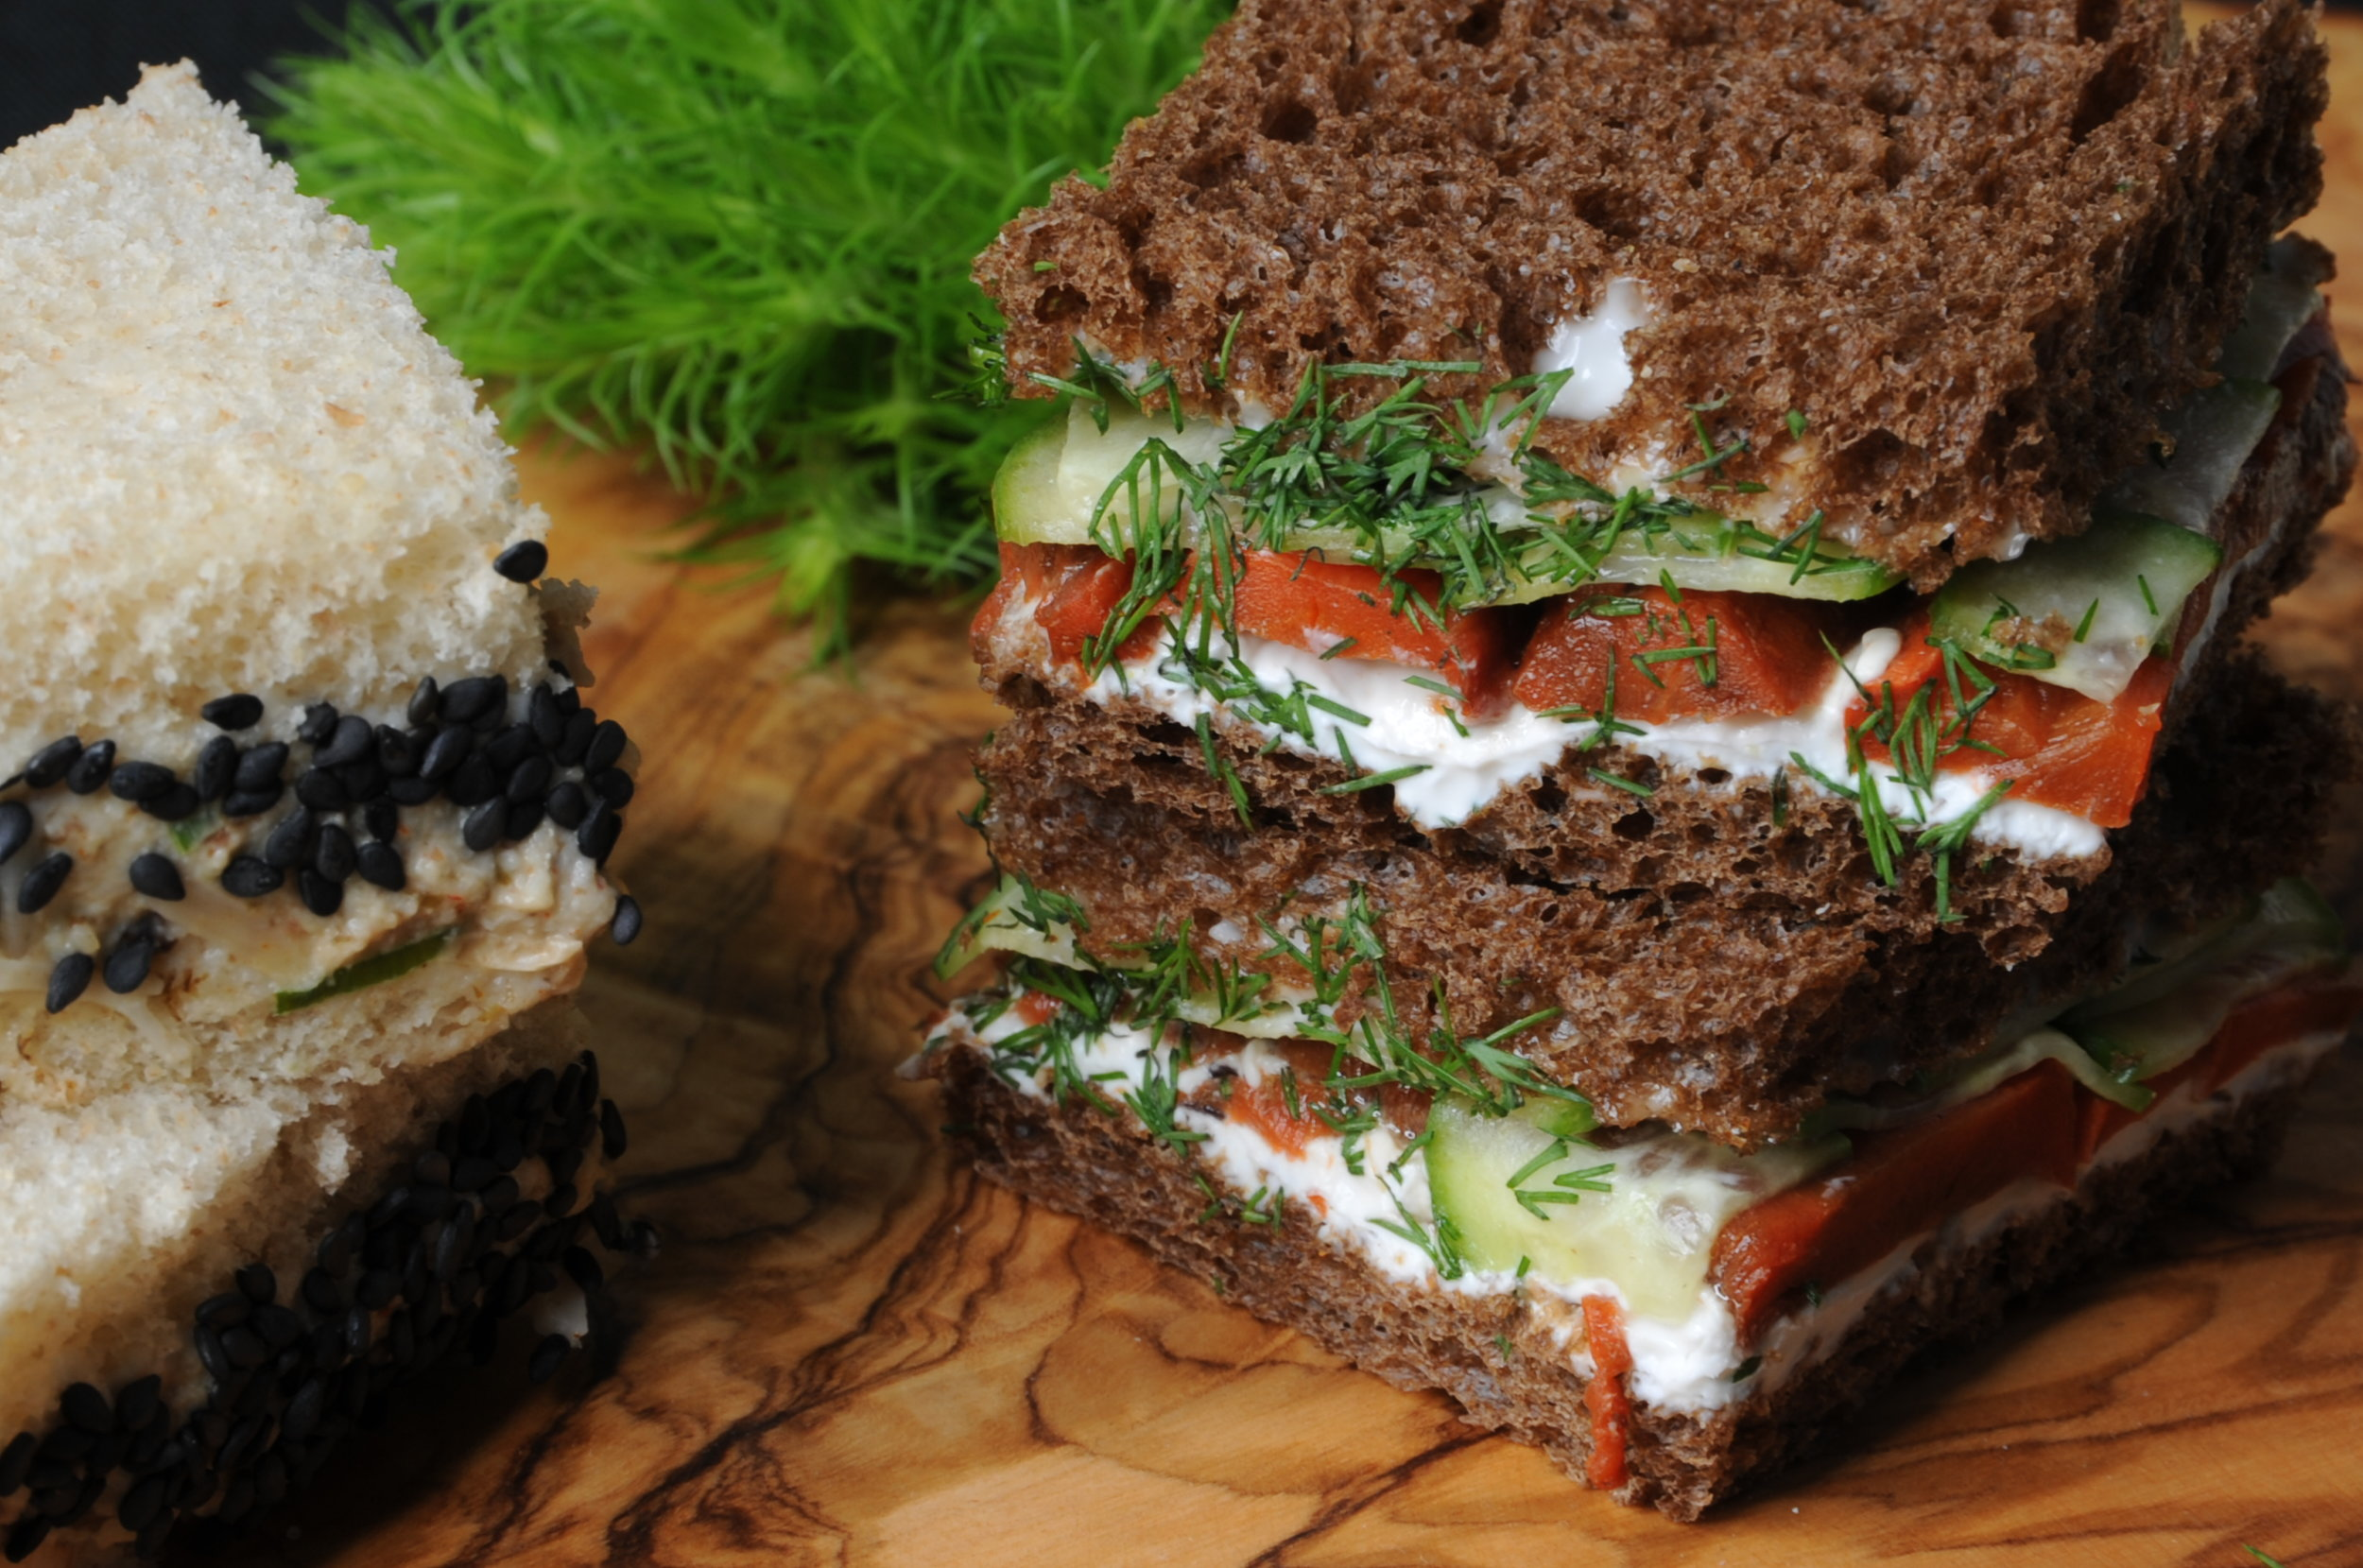 A selection of tea sandwiches including a jackfruit tuna with black sesame seeds and cucumber tomato with dill aioli